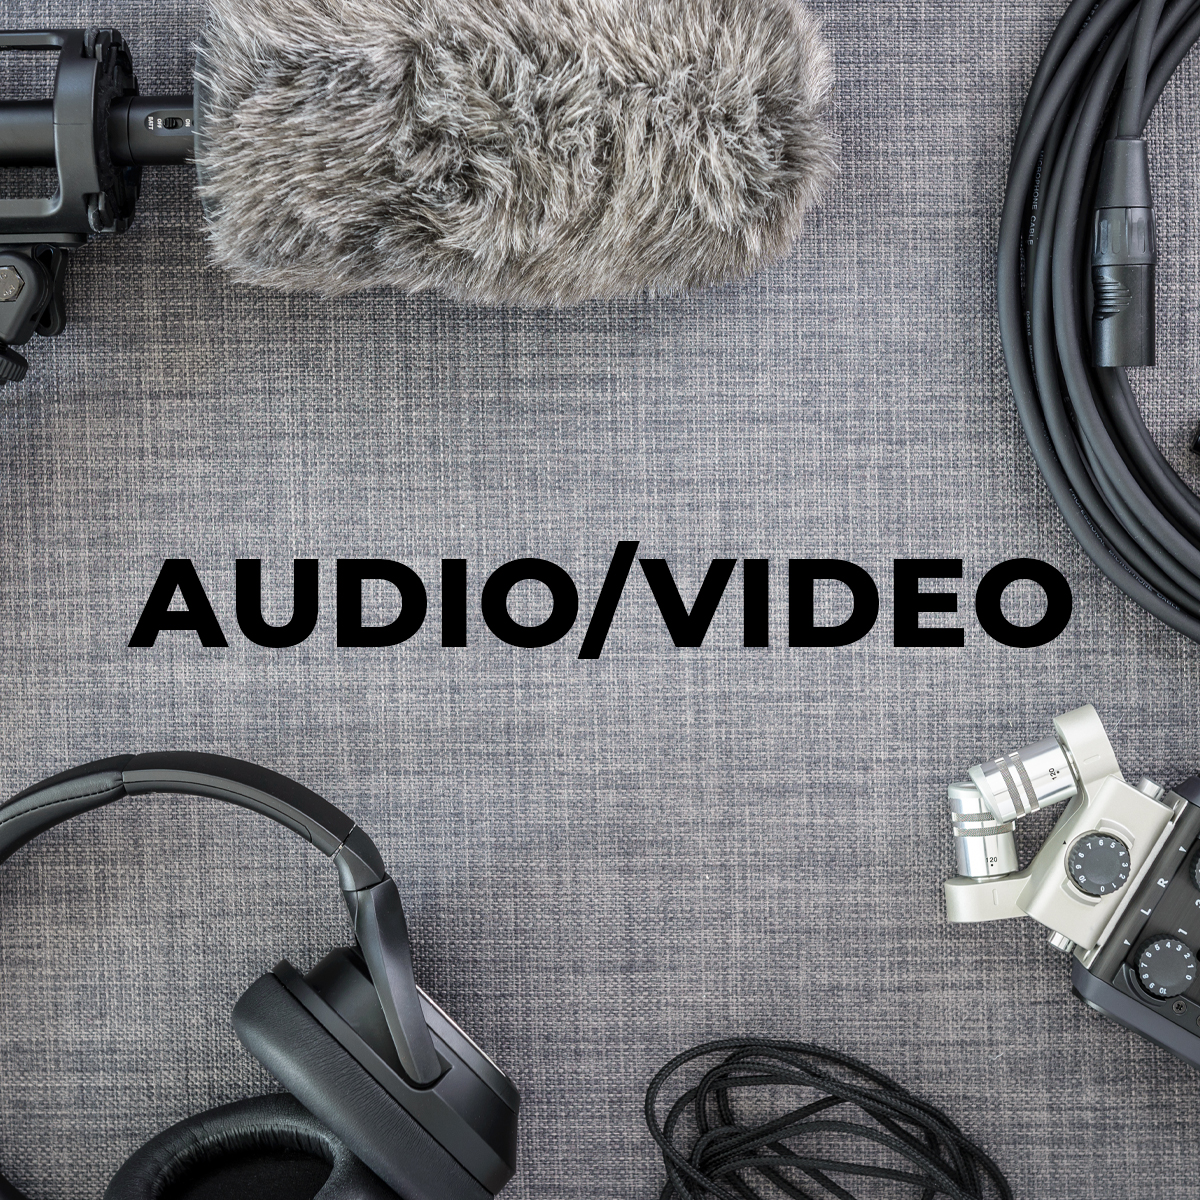 product-guide-audio-video-category-header.jpg